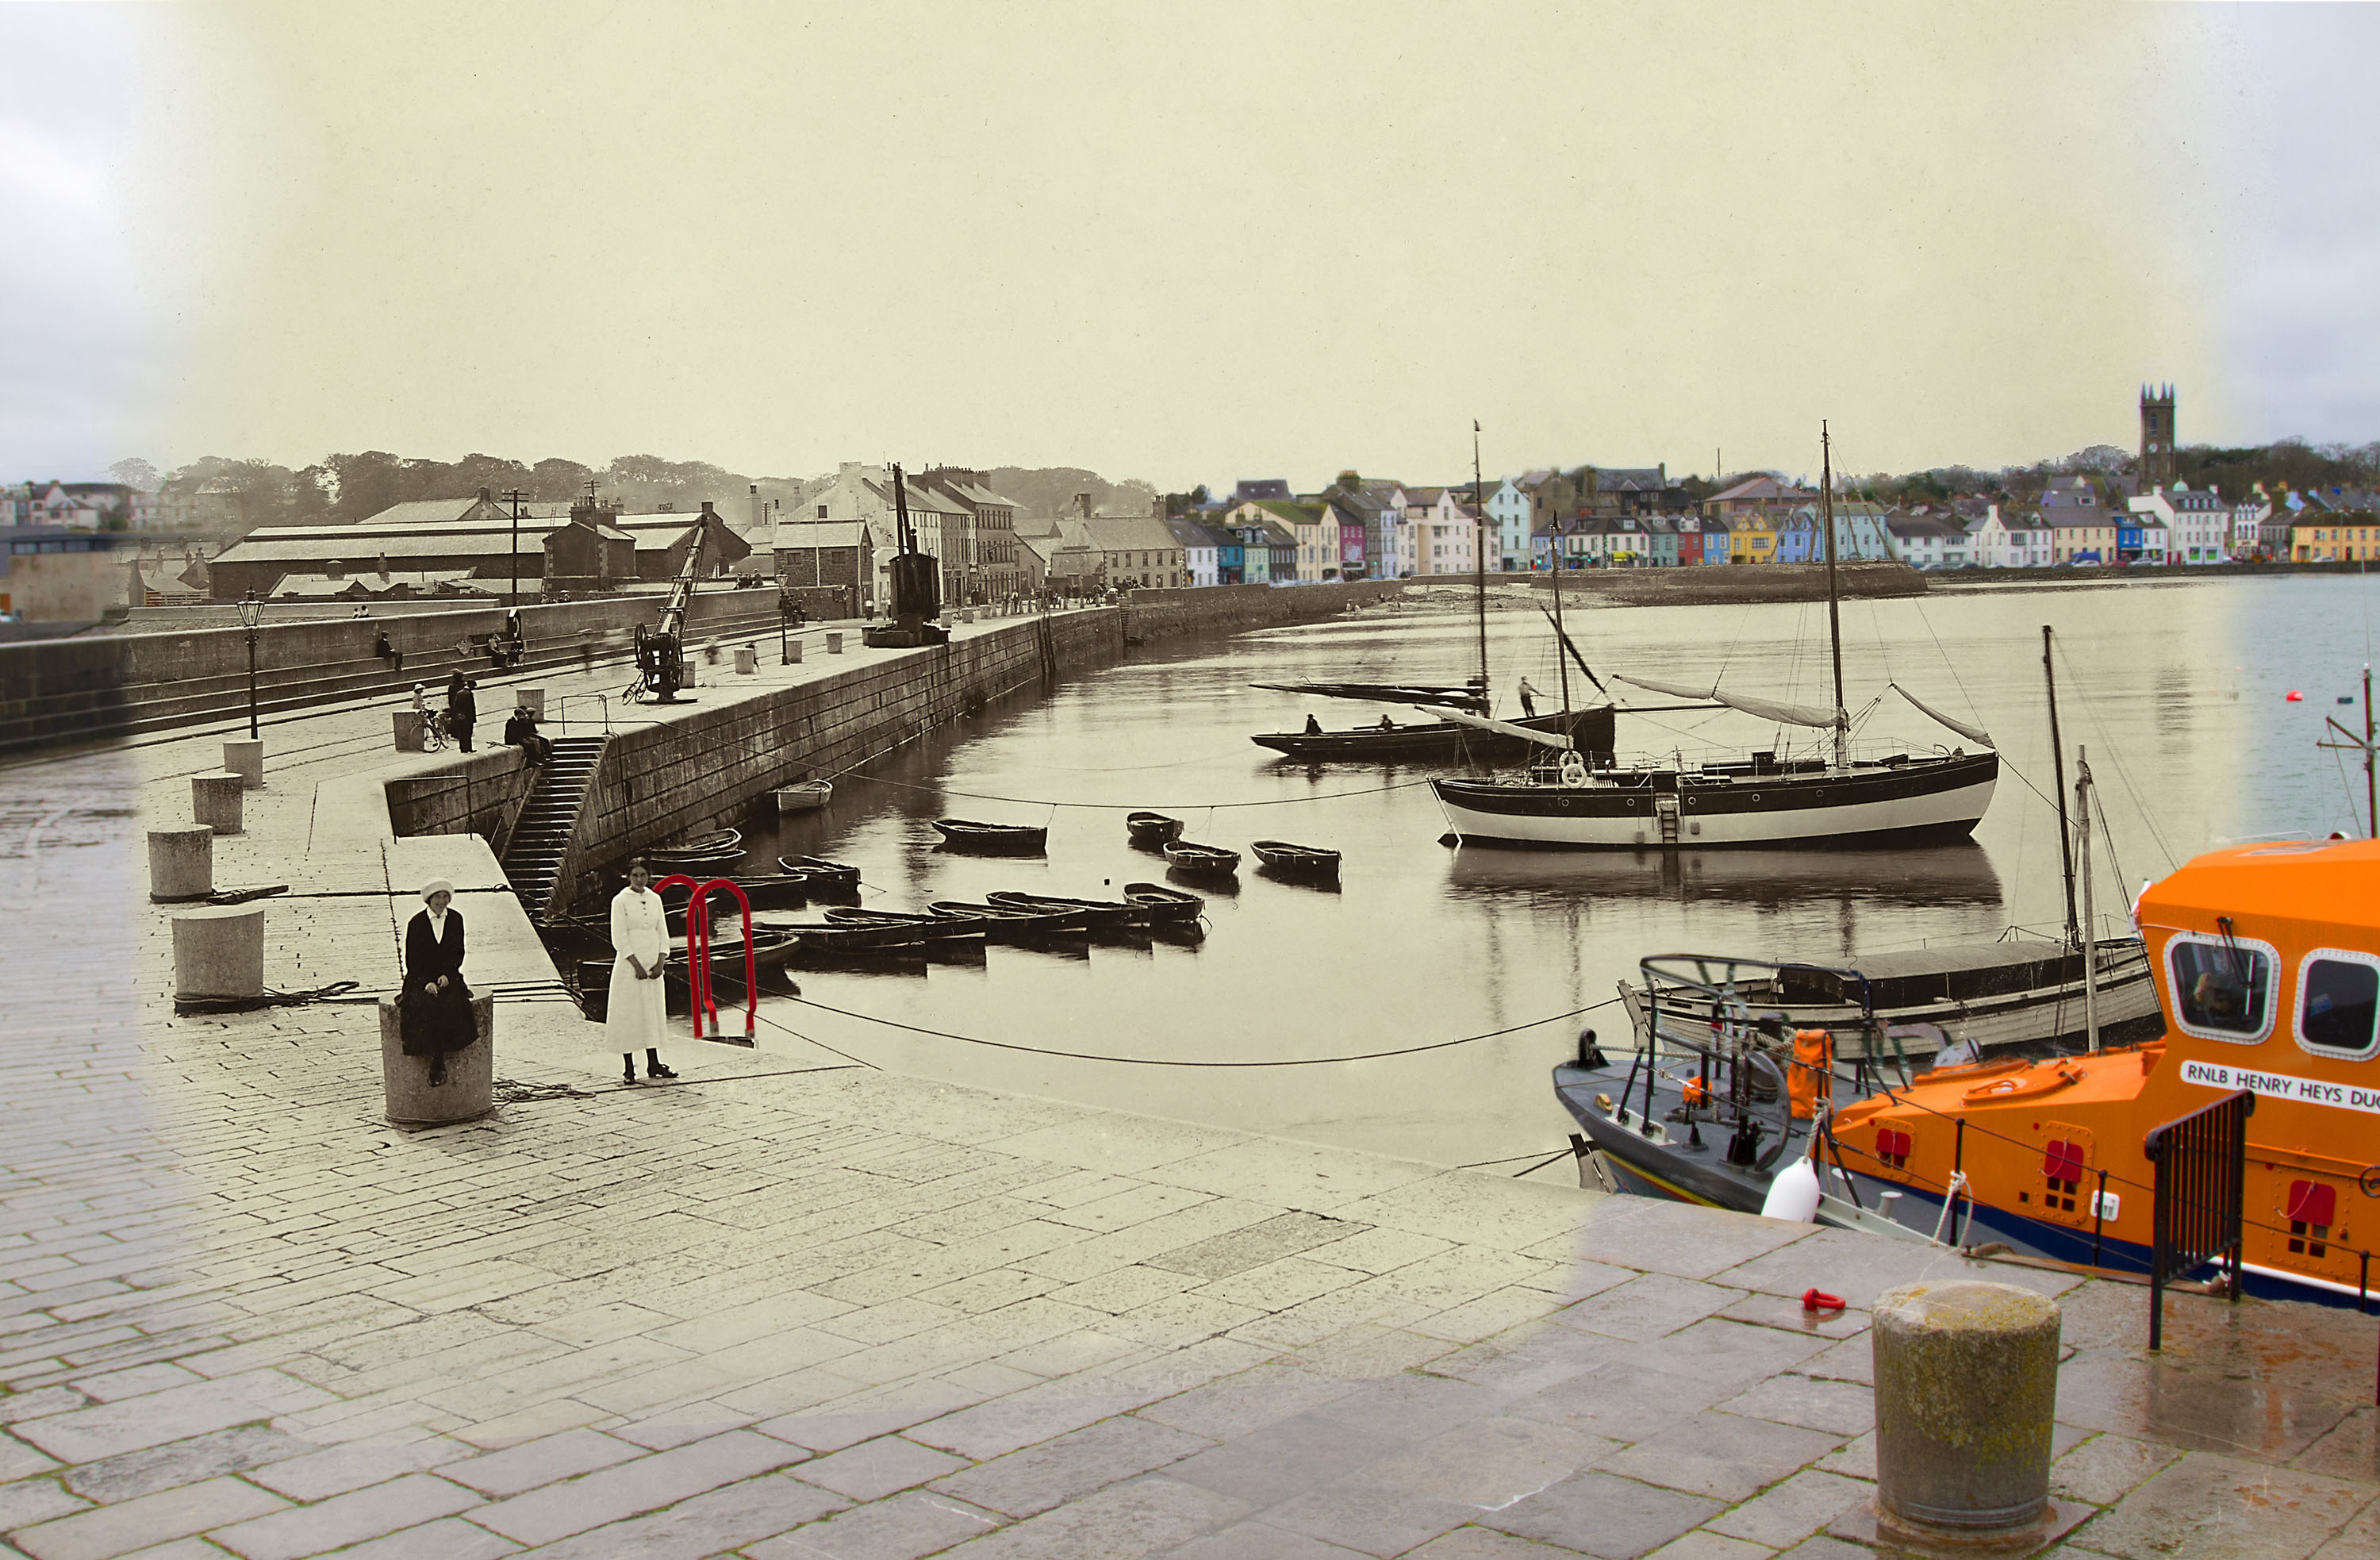 Donaghadee Harbour, County Down